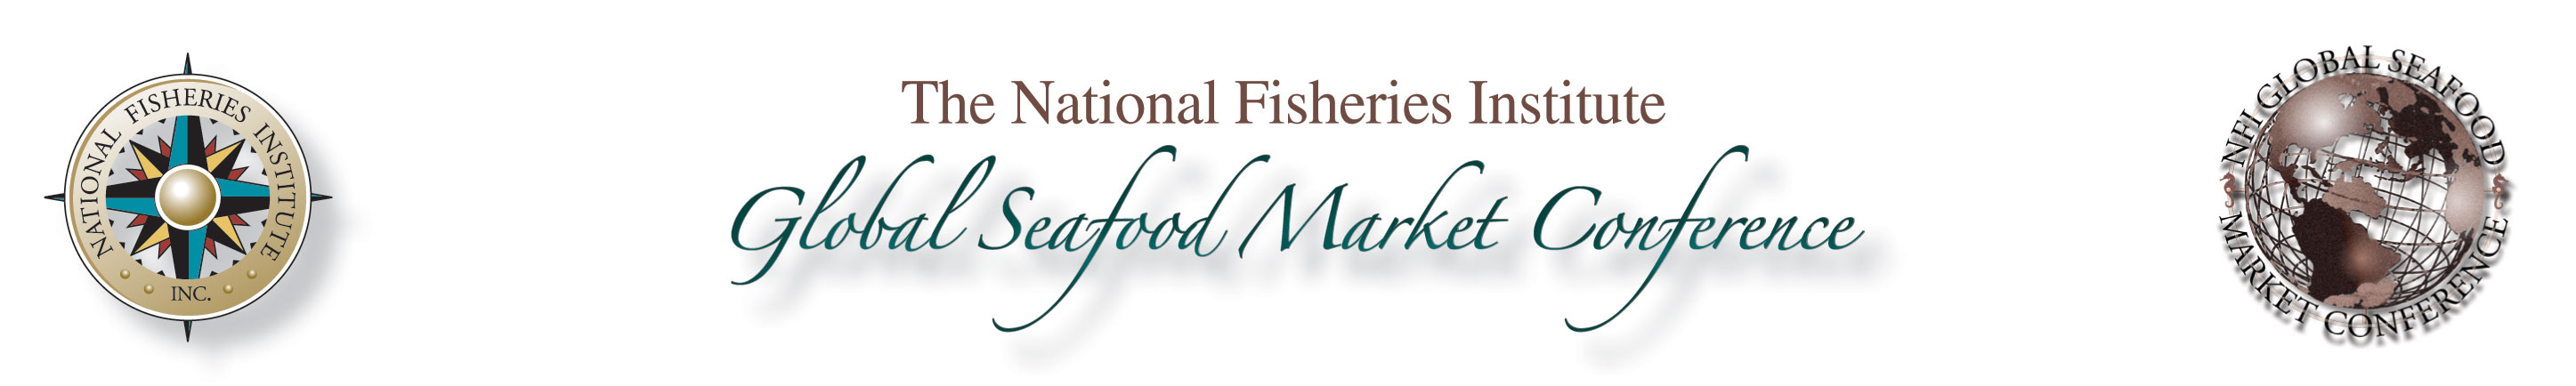 2013 Global Seafood Market Conference™